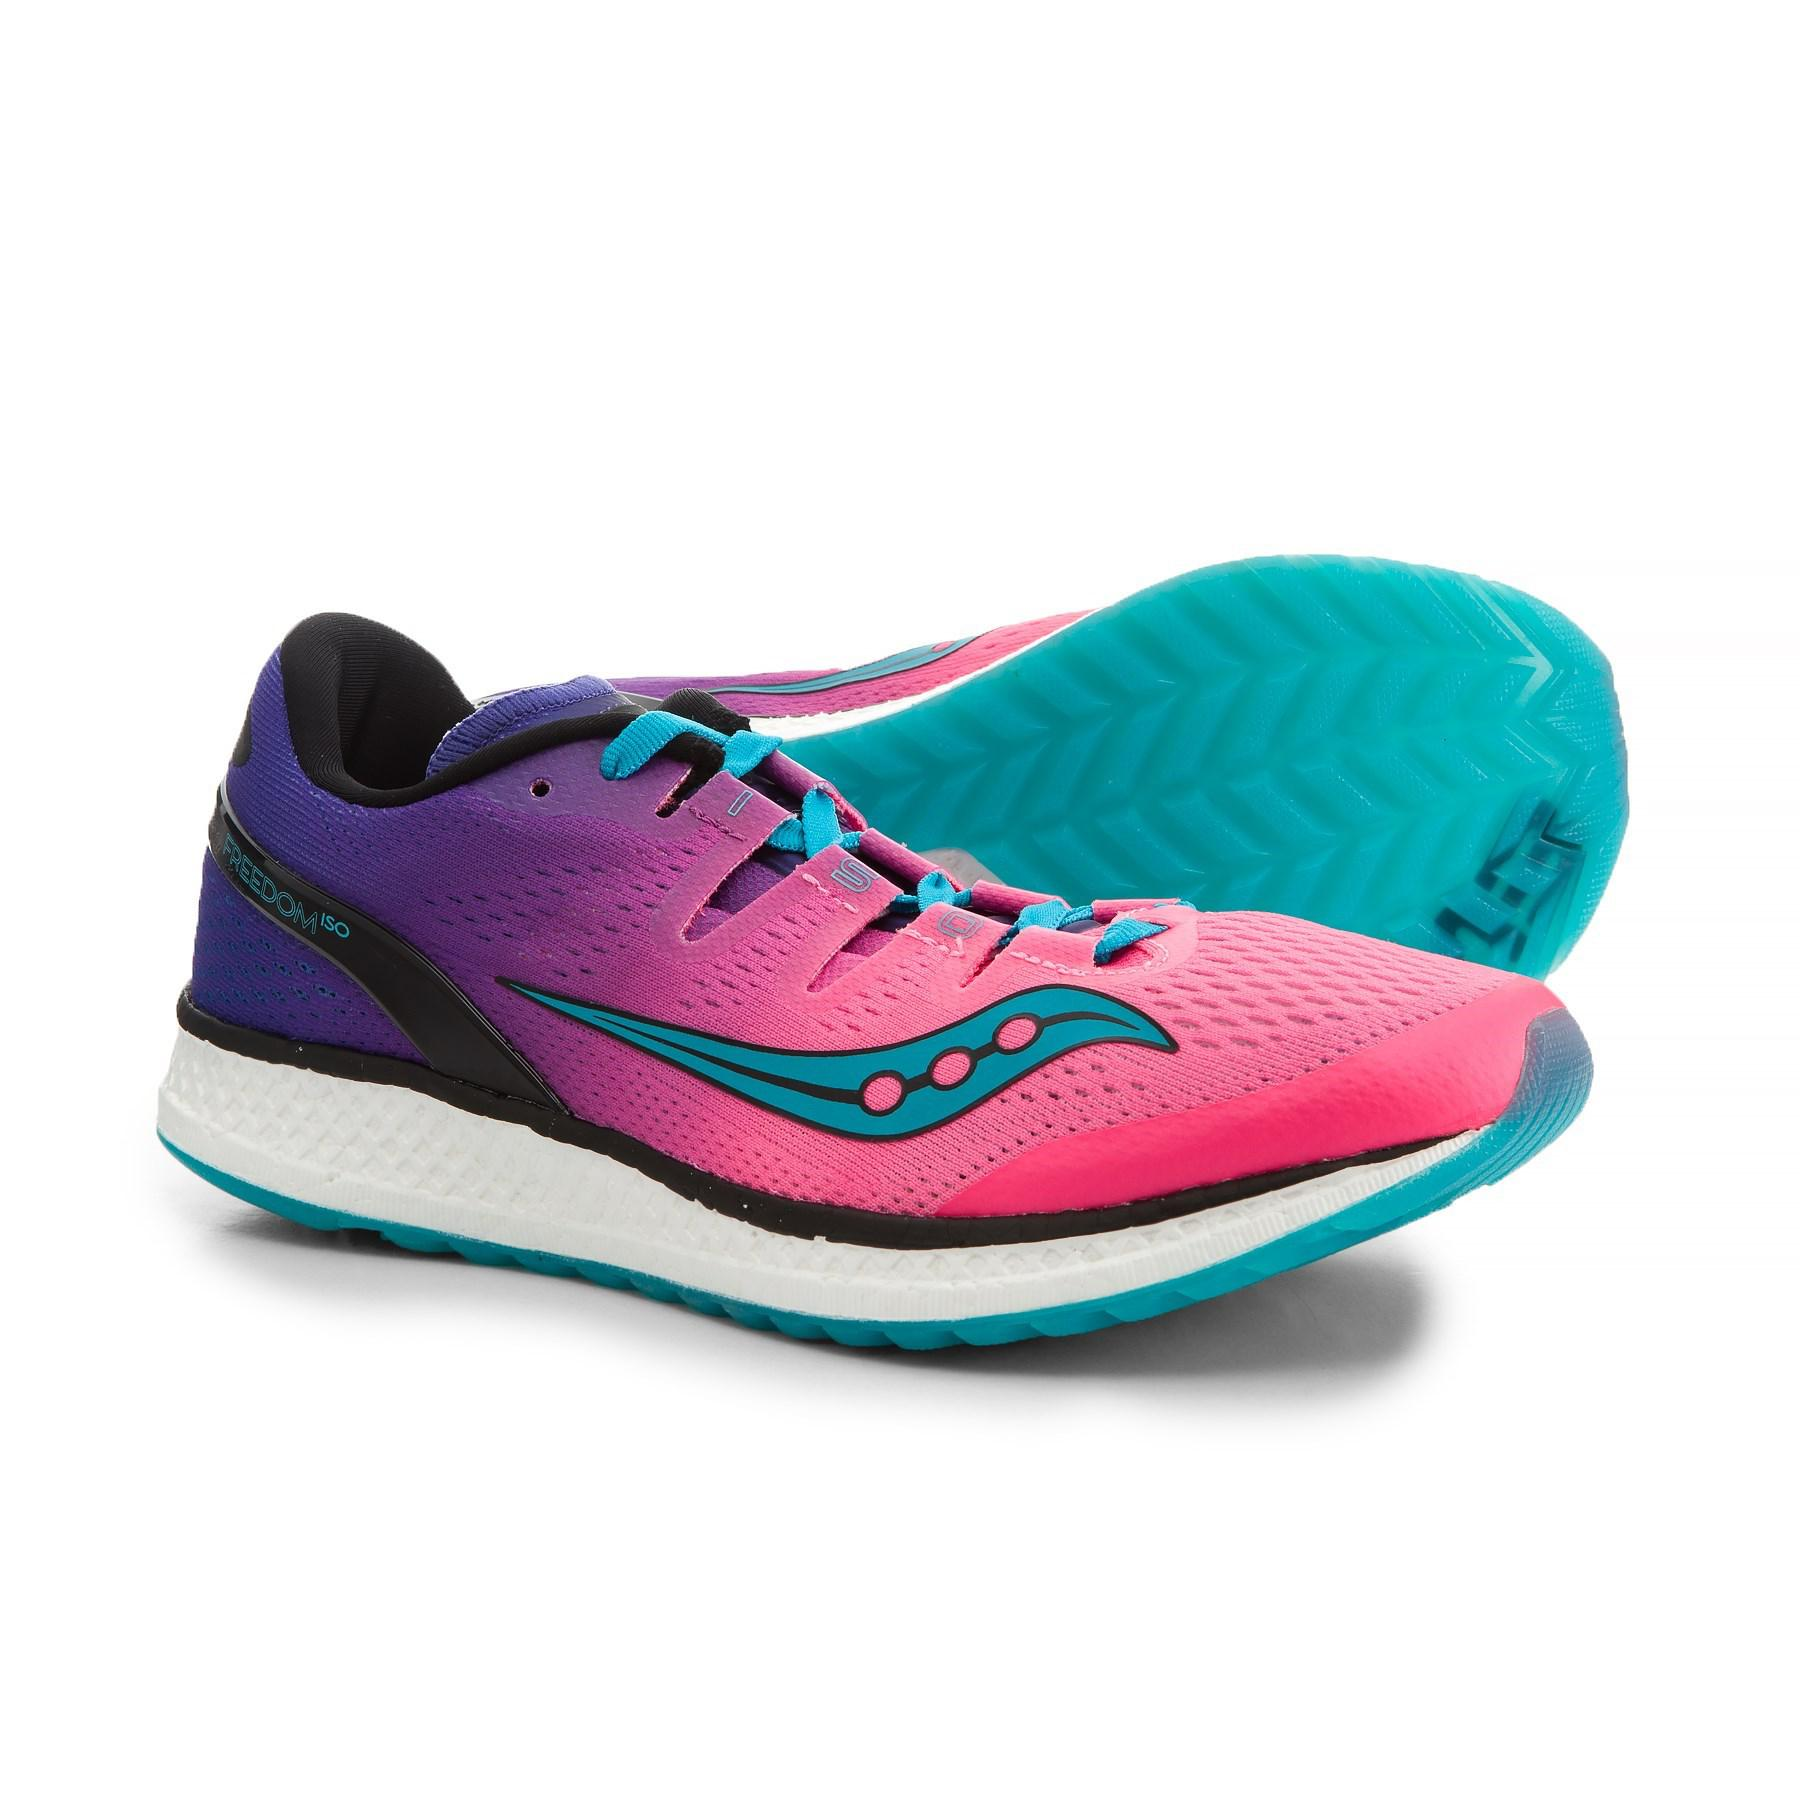 8fd08d7451e6 Lyst - Saucony Freedom Iso Running Shoes (for Women)